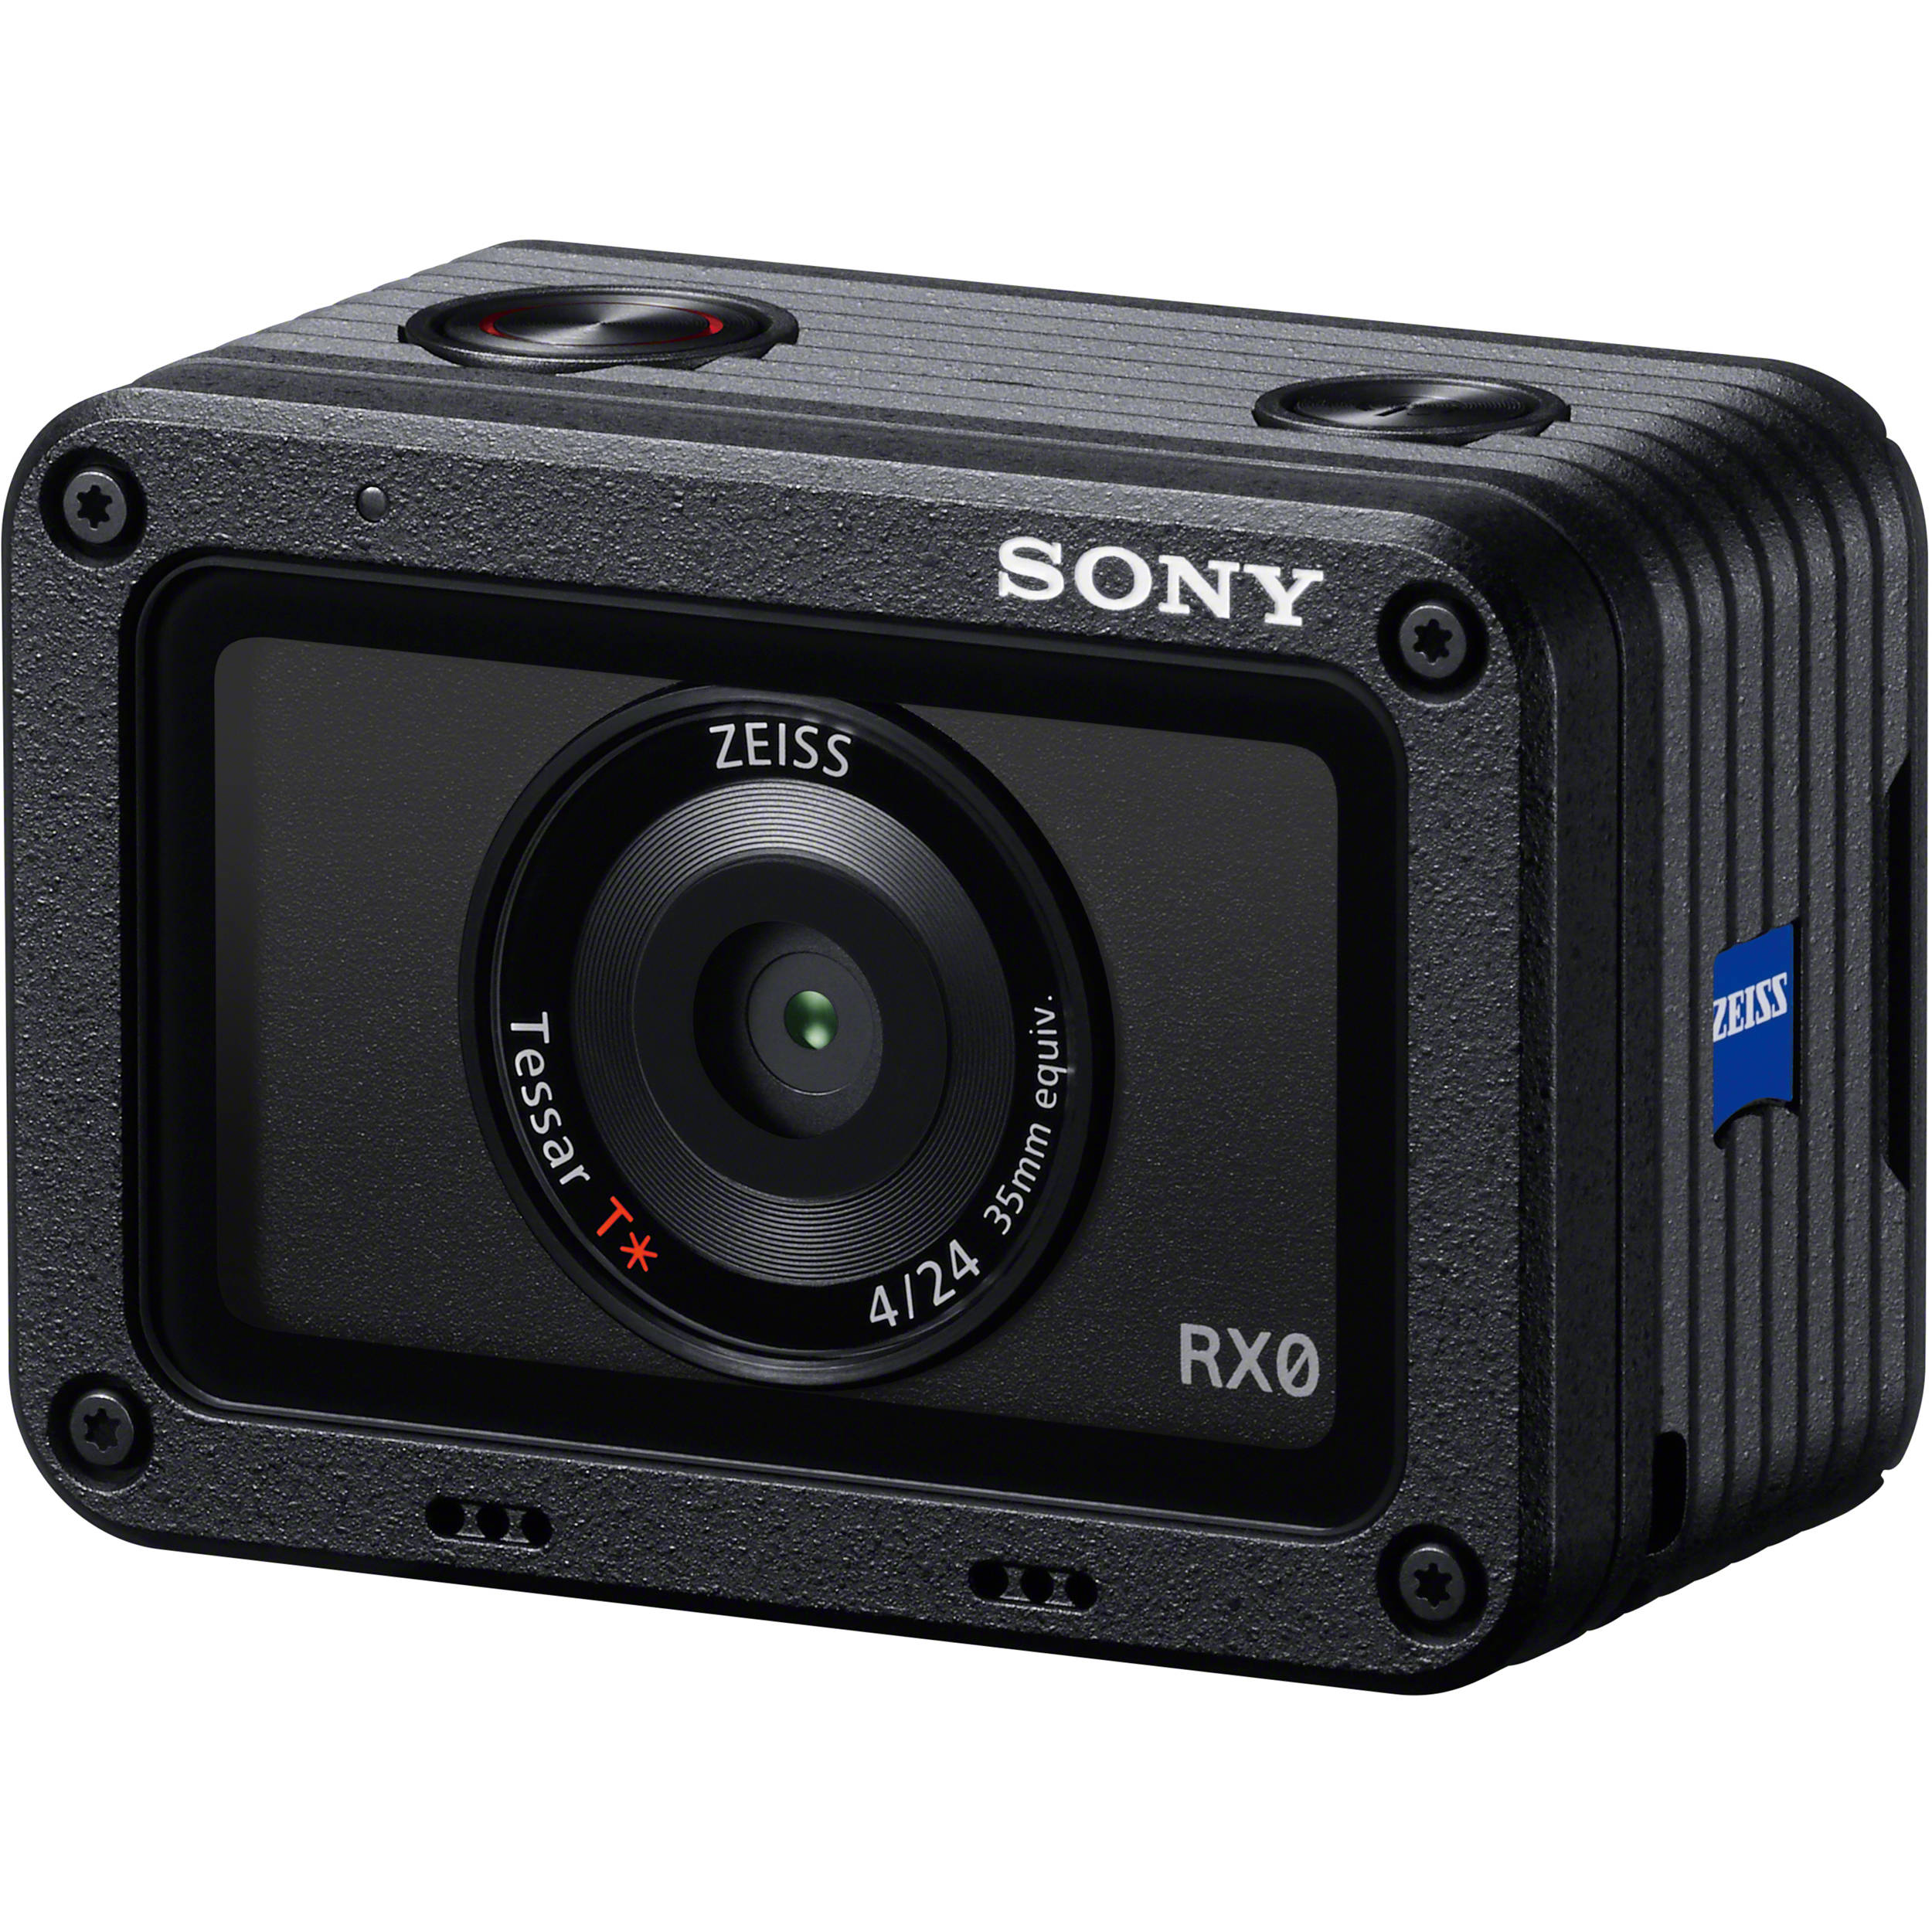 Jual Harga Sony DSC-RX0 1.0 Sensor Ultra-Compact Camera with Waterproof and Shockproof Design